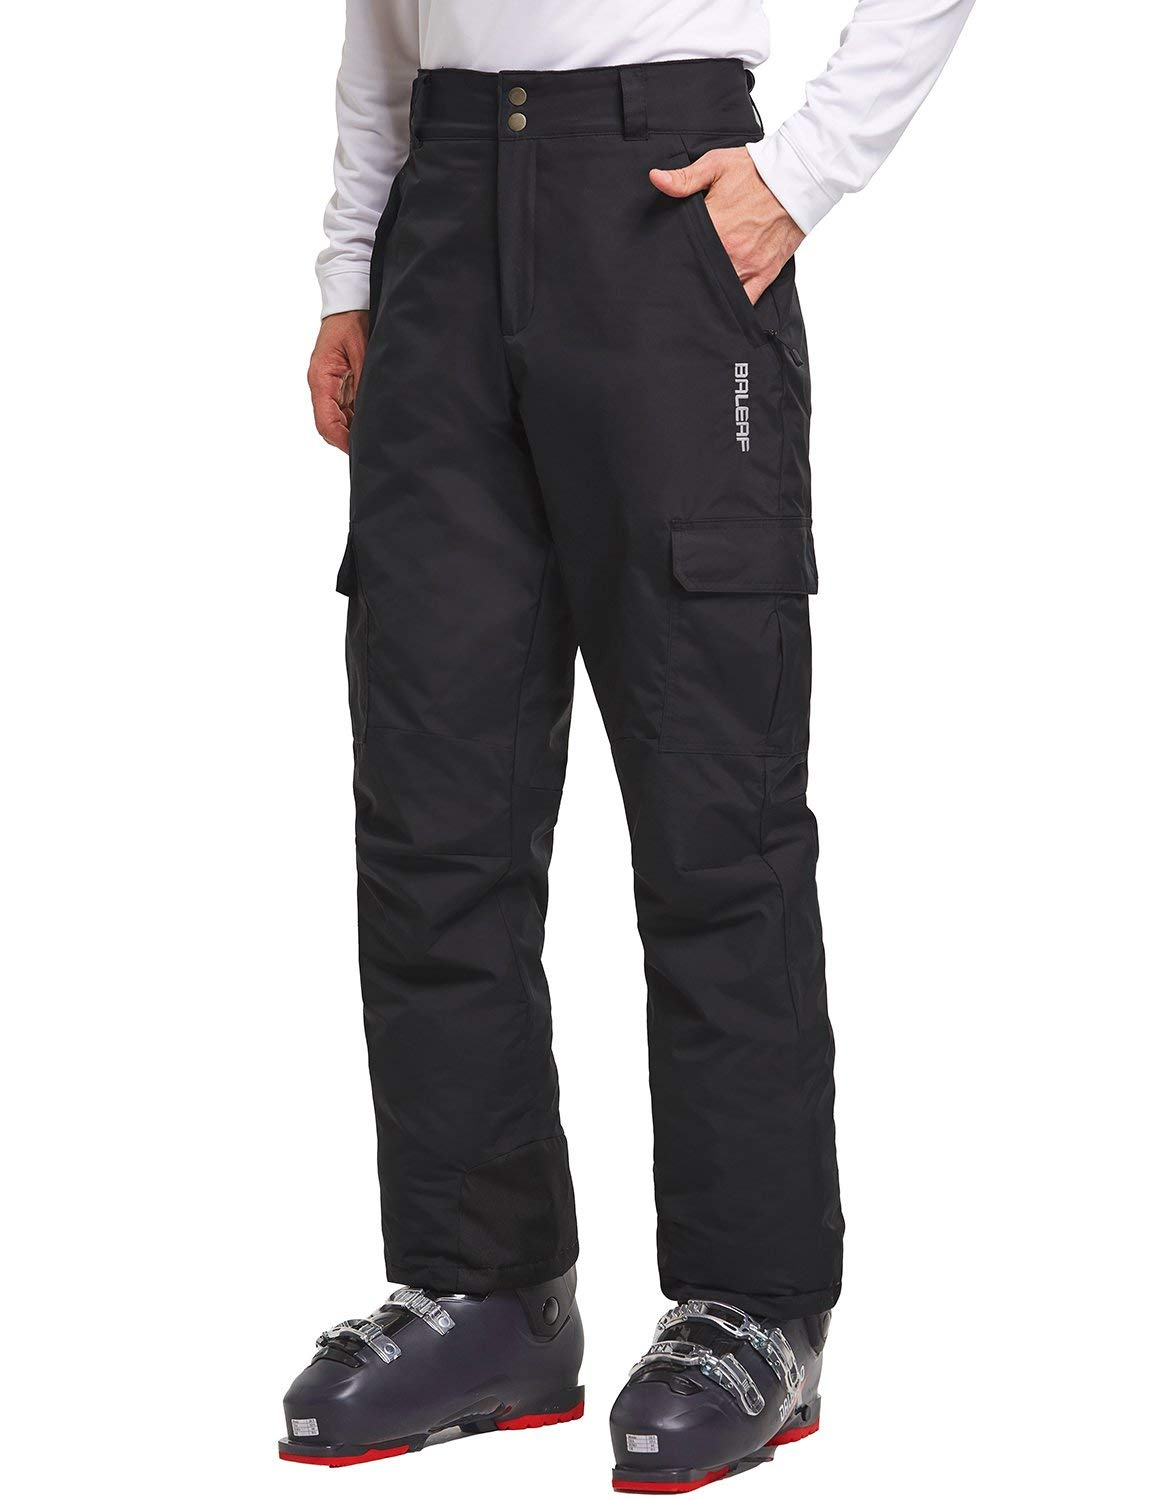 Baleaf/ Mens/ Ski/ Snowboarding/ Pants/ Waterproof/ Windproof/ Winter/ Snow/ Insulated/ Pants